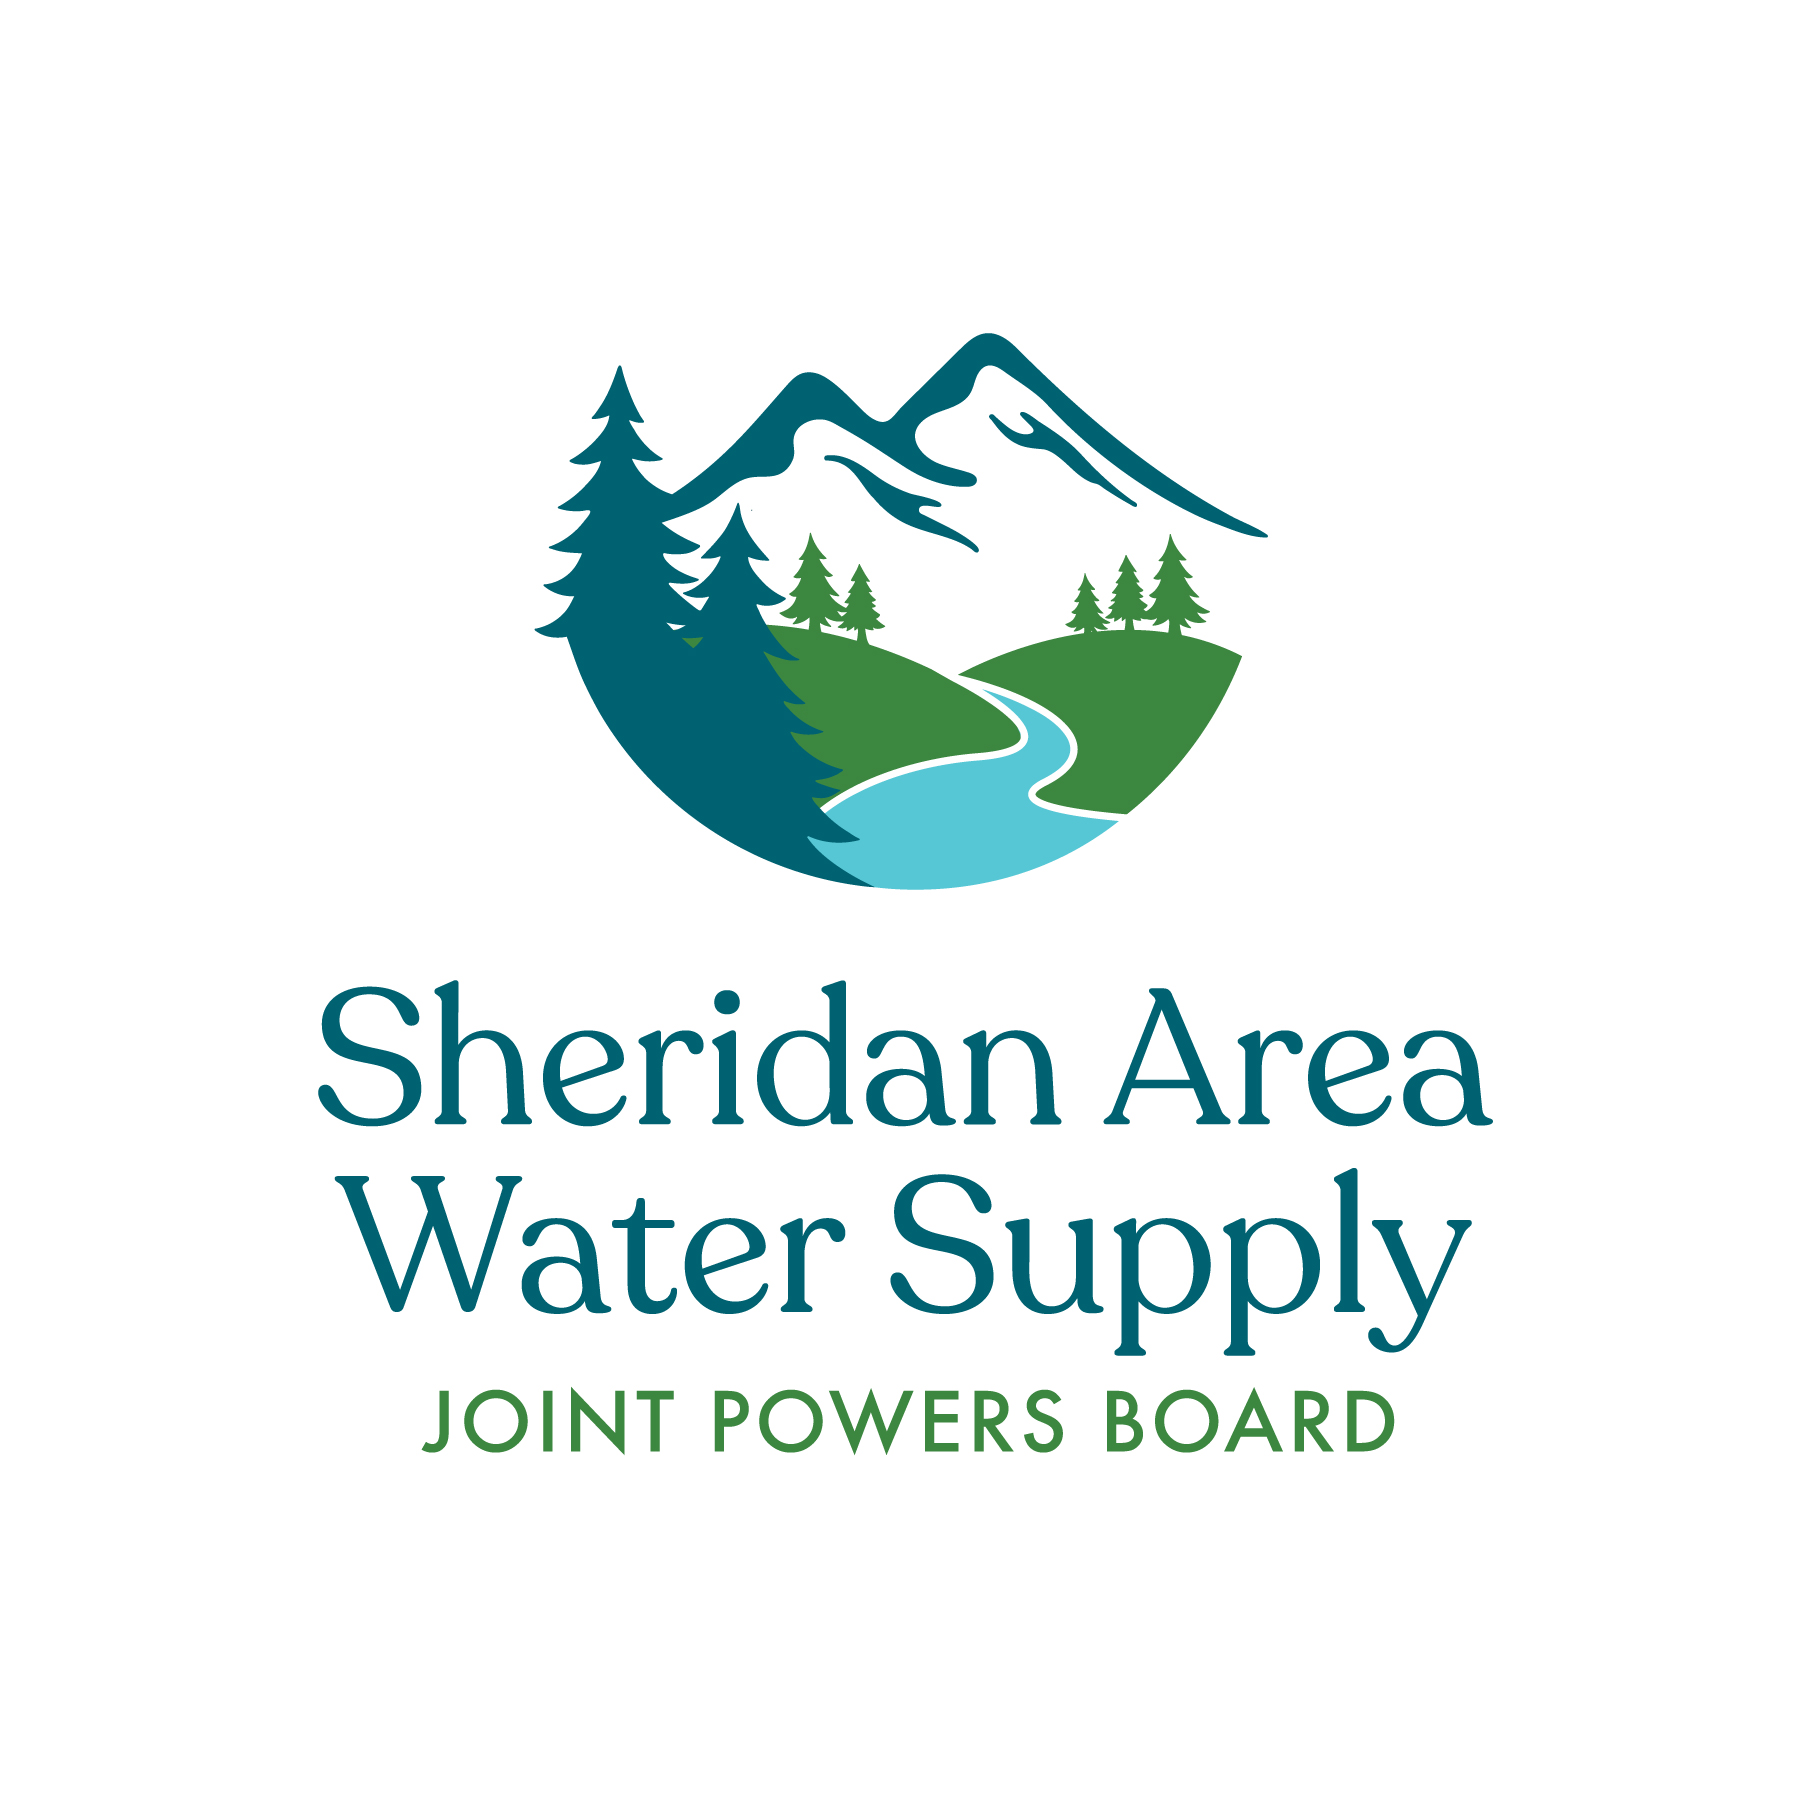 SAWS - Sheridan Area Water Supply Joint Powers Board - Logo and branding graphic design